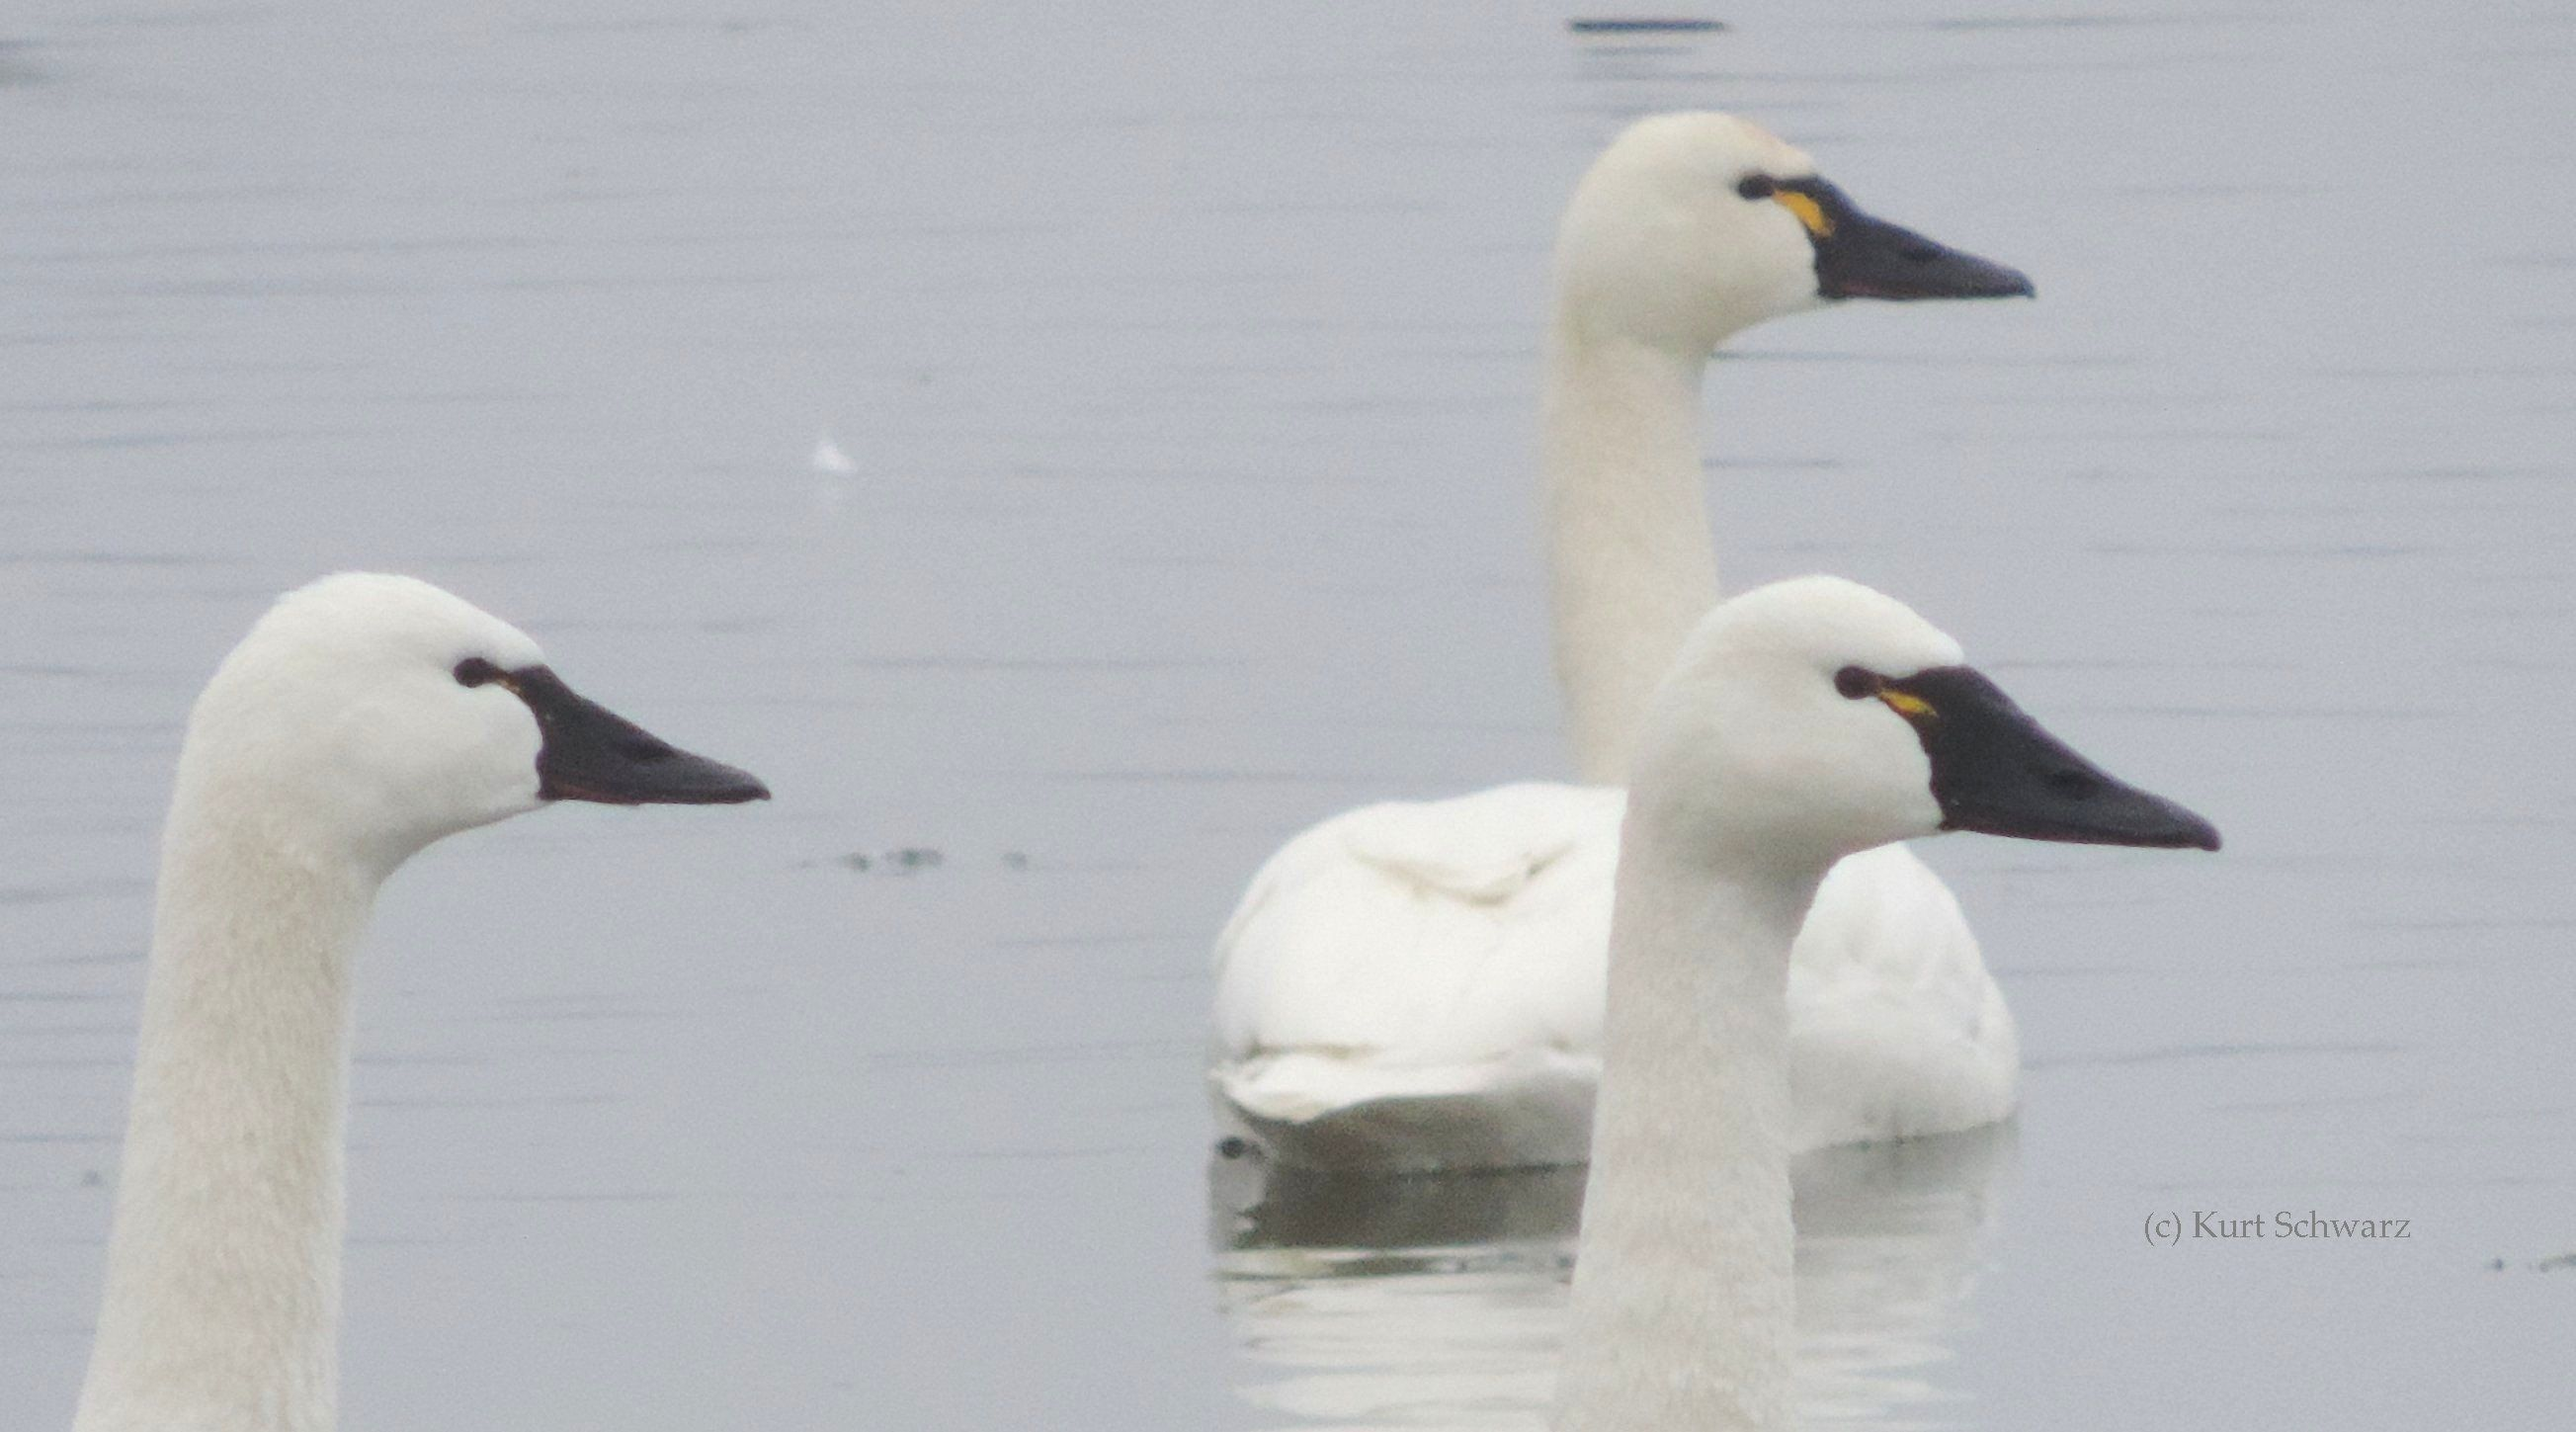 Above: Tundra Swans with yellow markings